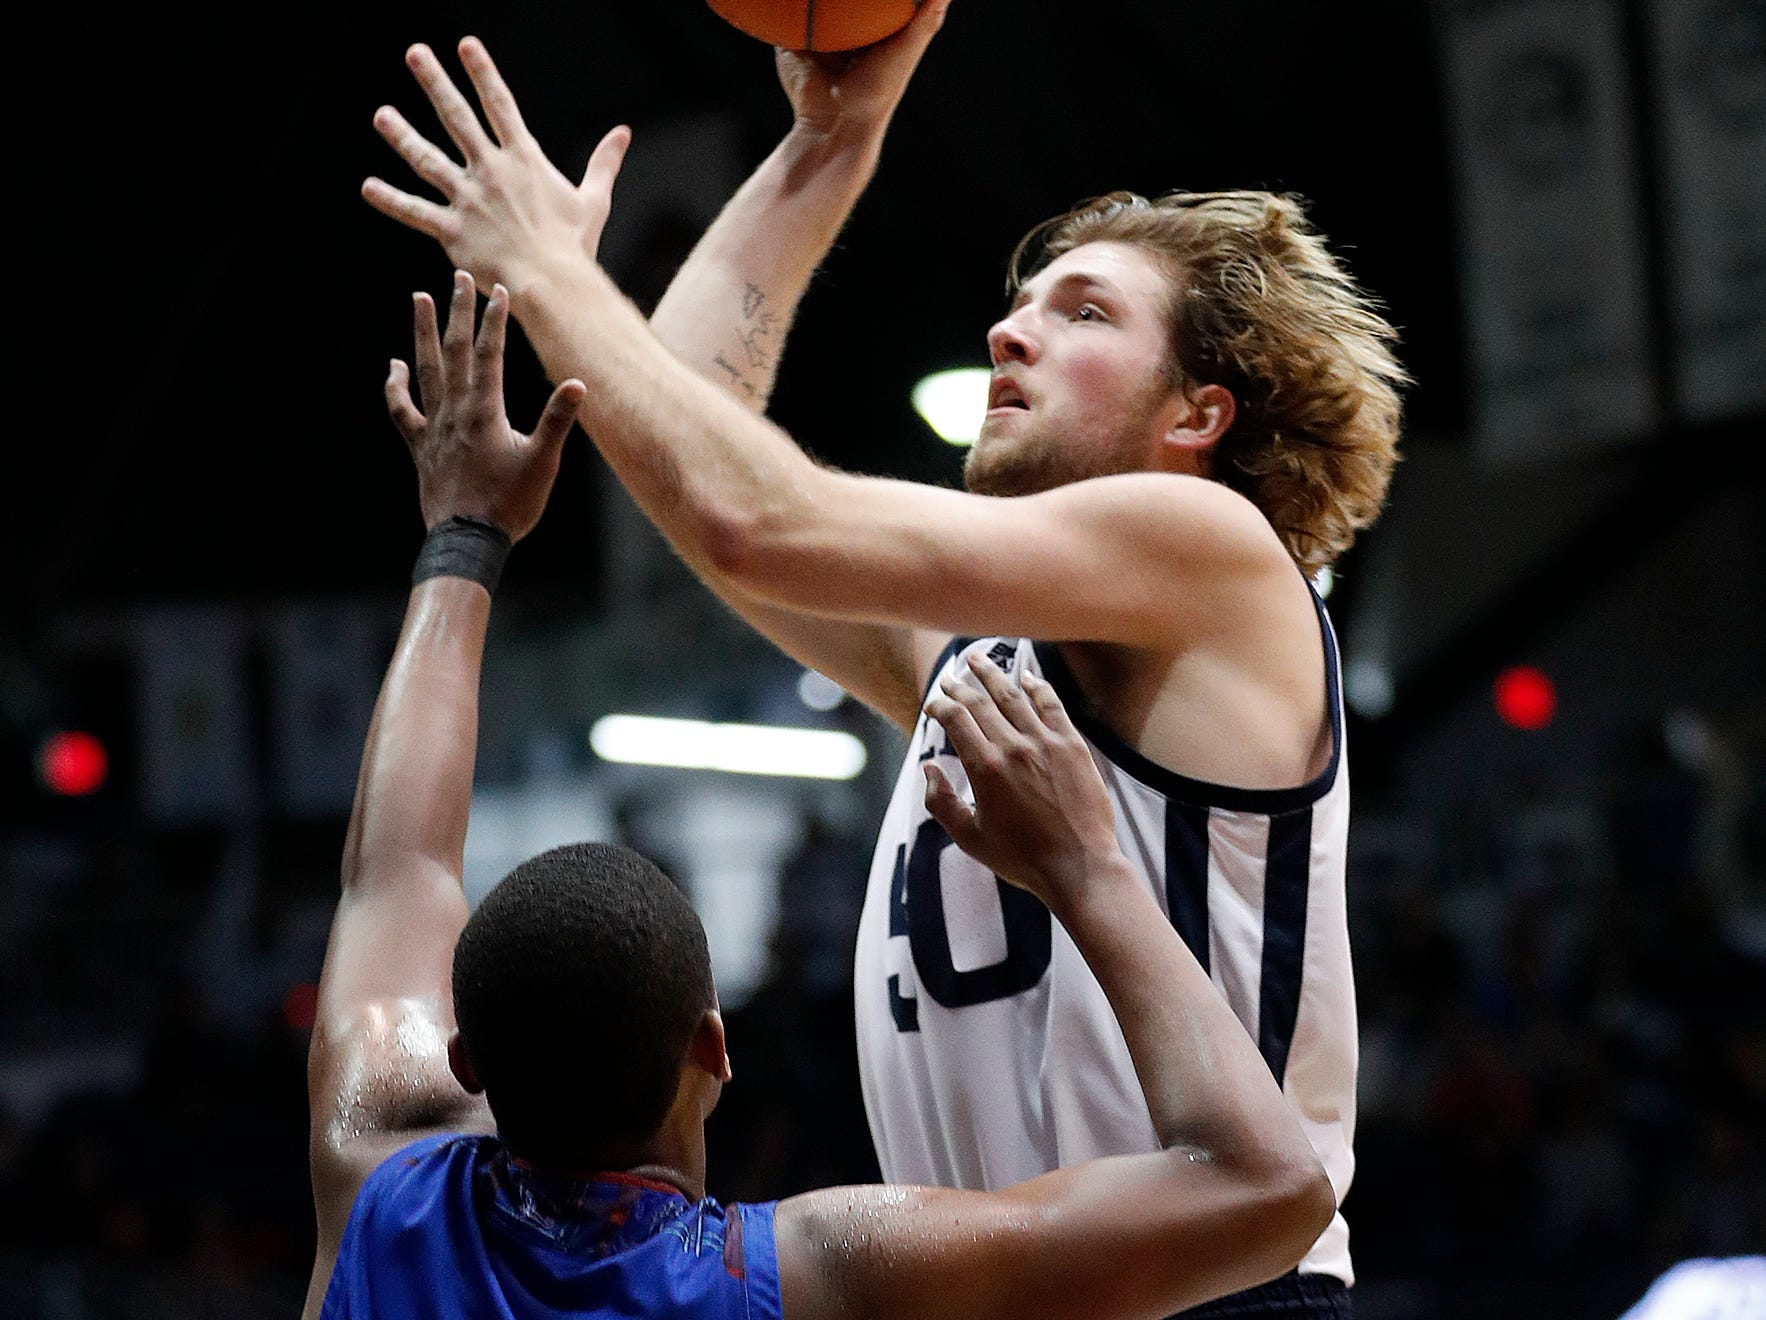 Butler Bulldogs forward Joey Brunk (50) shoots over Presbyterian Blue Hose forward Cory Hightower (12) in the second half of their game at Hinkle Fieldhouse on Monday, Dec. 18, 2018.